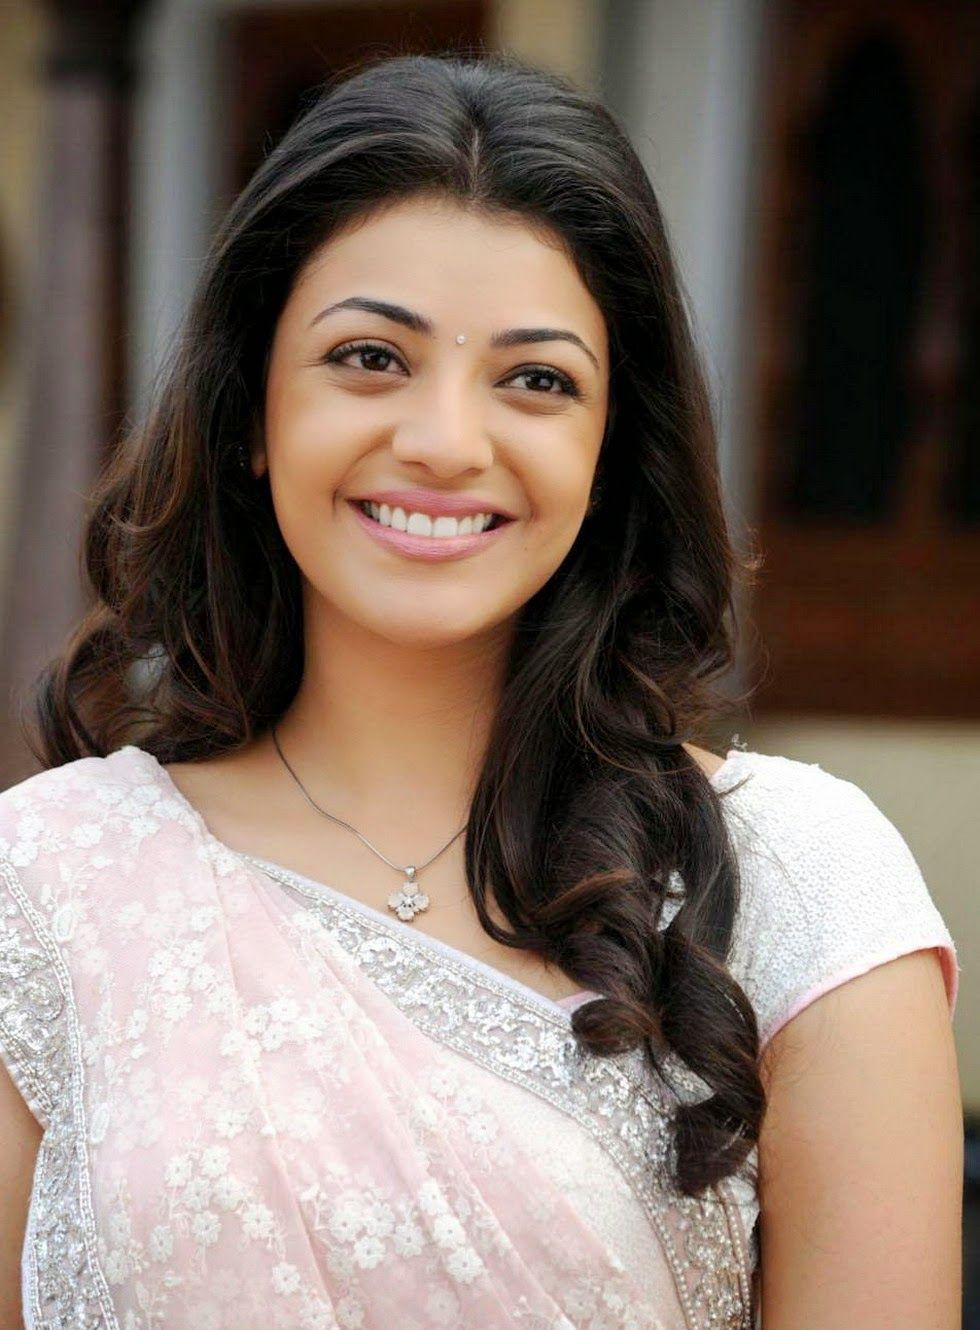 Kajal Agarwal Wallpapers Free Download Moviempsongsdownload - Hot top 35 kajal aggarwal wallpapers hd images photos collection